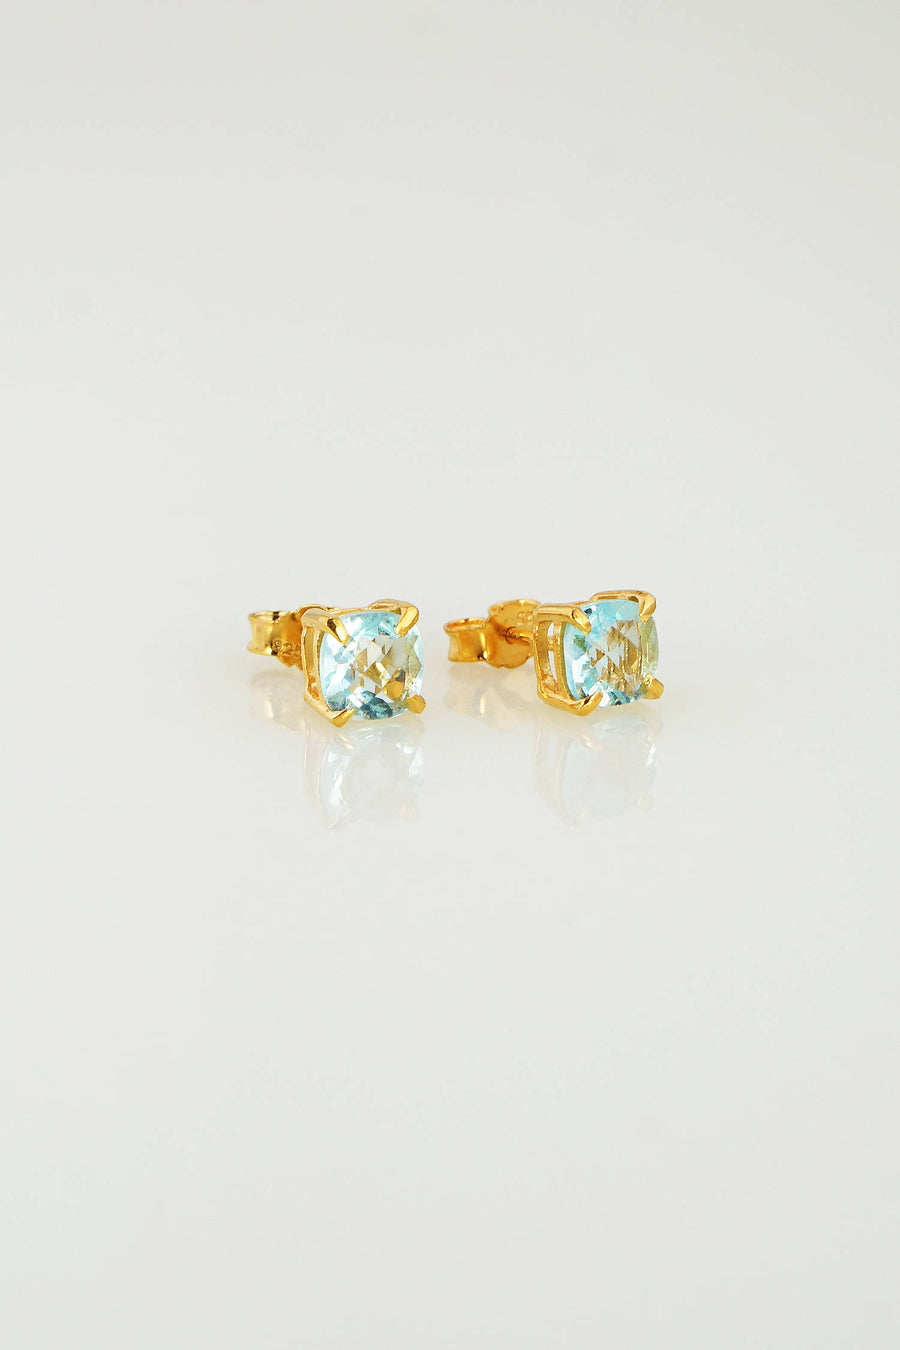 8974072b3 Aquamarine Post Earring, March Birthstone Studs, Minimalist studs, Tiny  Studs, Cushion Shape